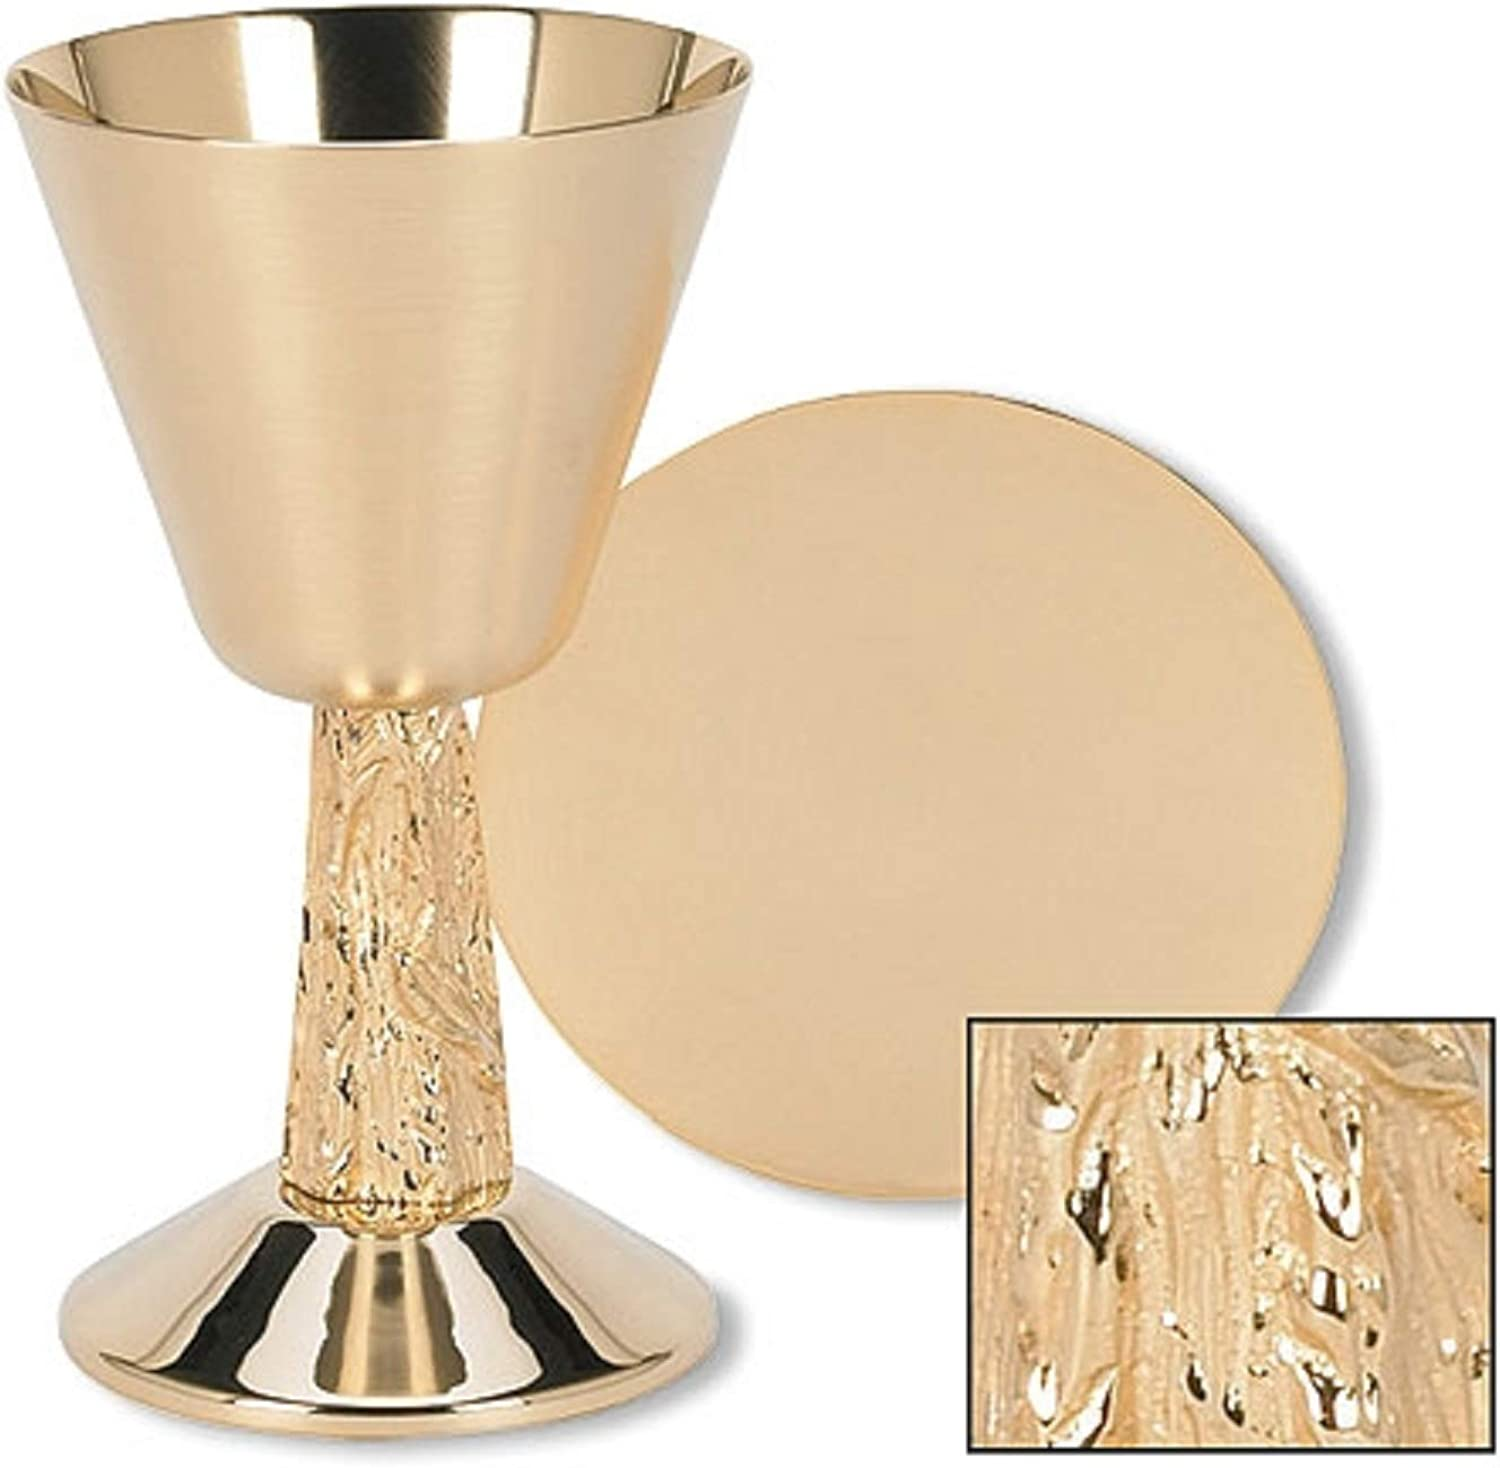 Stratford Chapel gold Tone Satin Cup with Hand Cast Vine Stem Chalice and Paten Set, 7 1 4 Inch